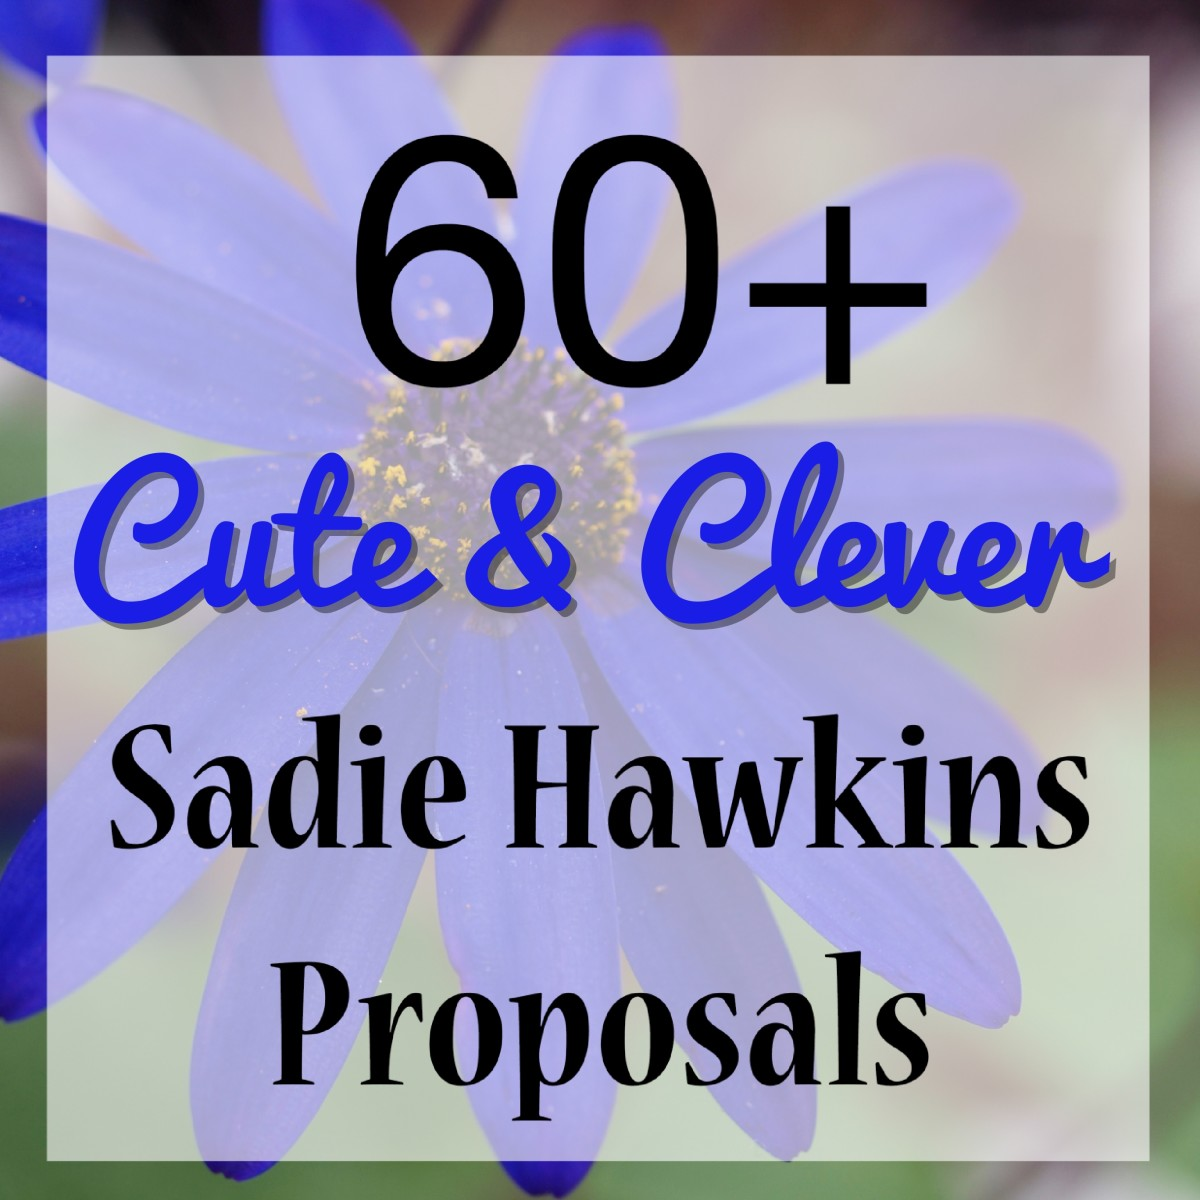 Need ideas on how to ask your crush to the Sadie Hawkins dance?  Here are over 60 to choose from.